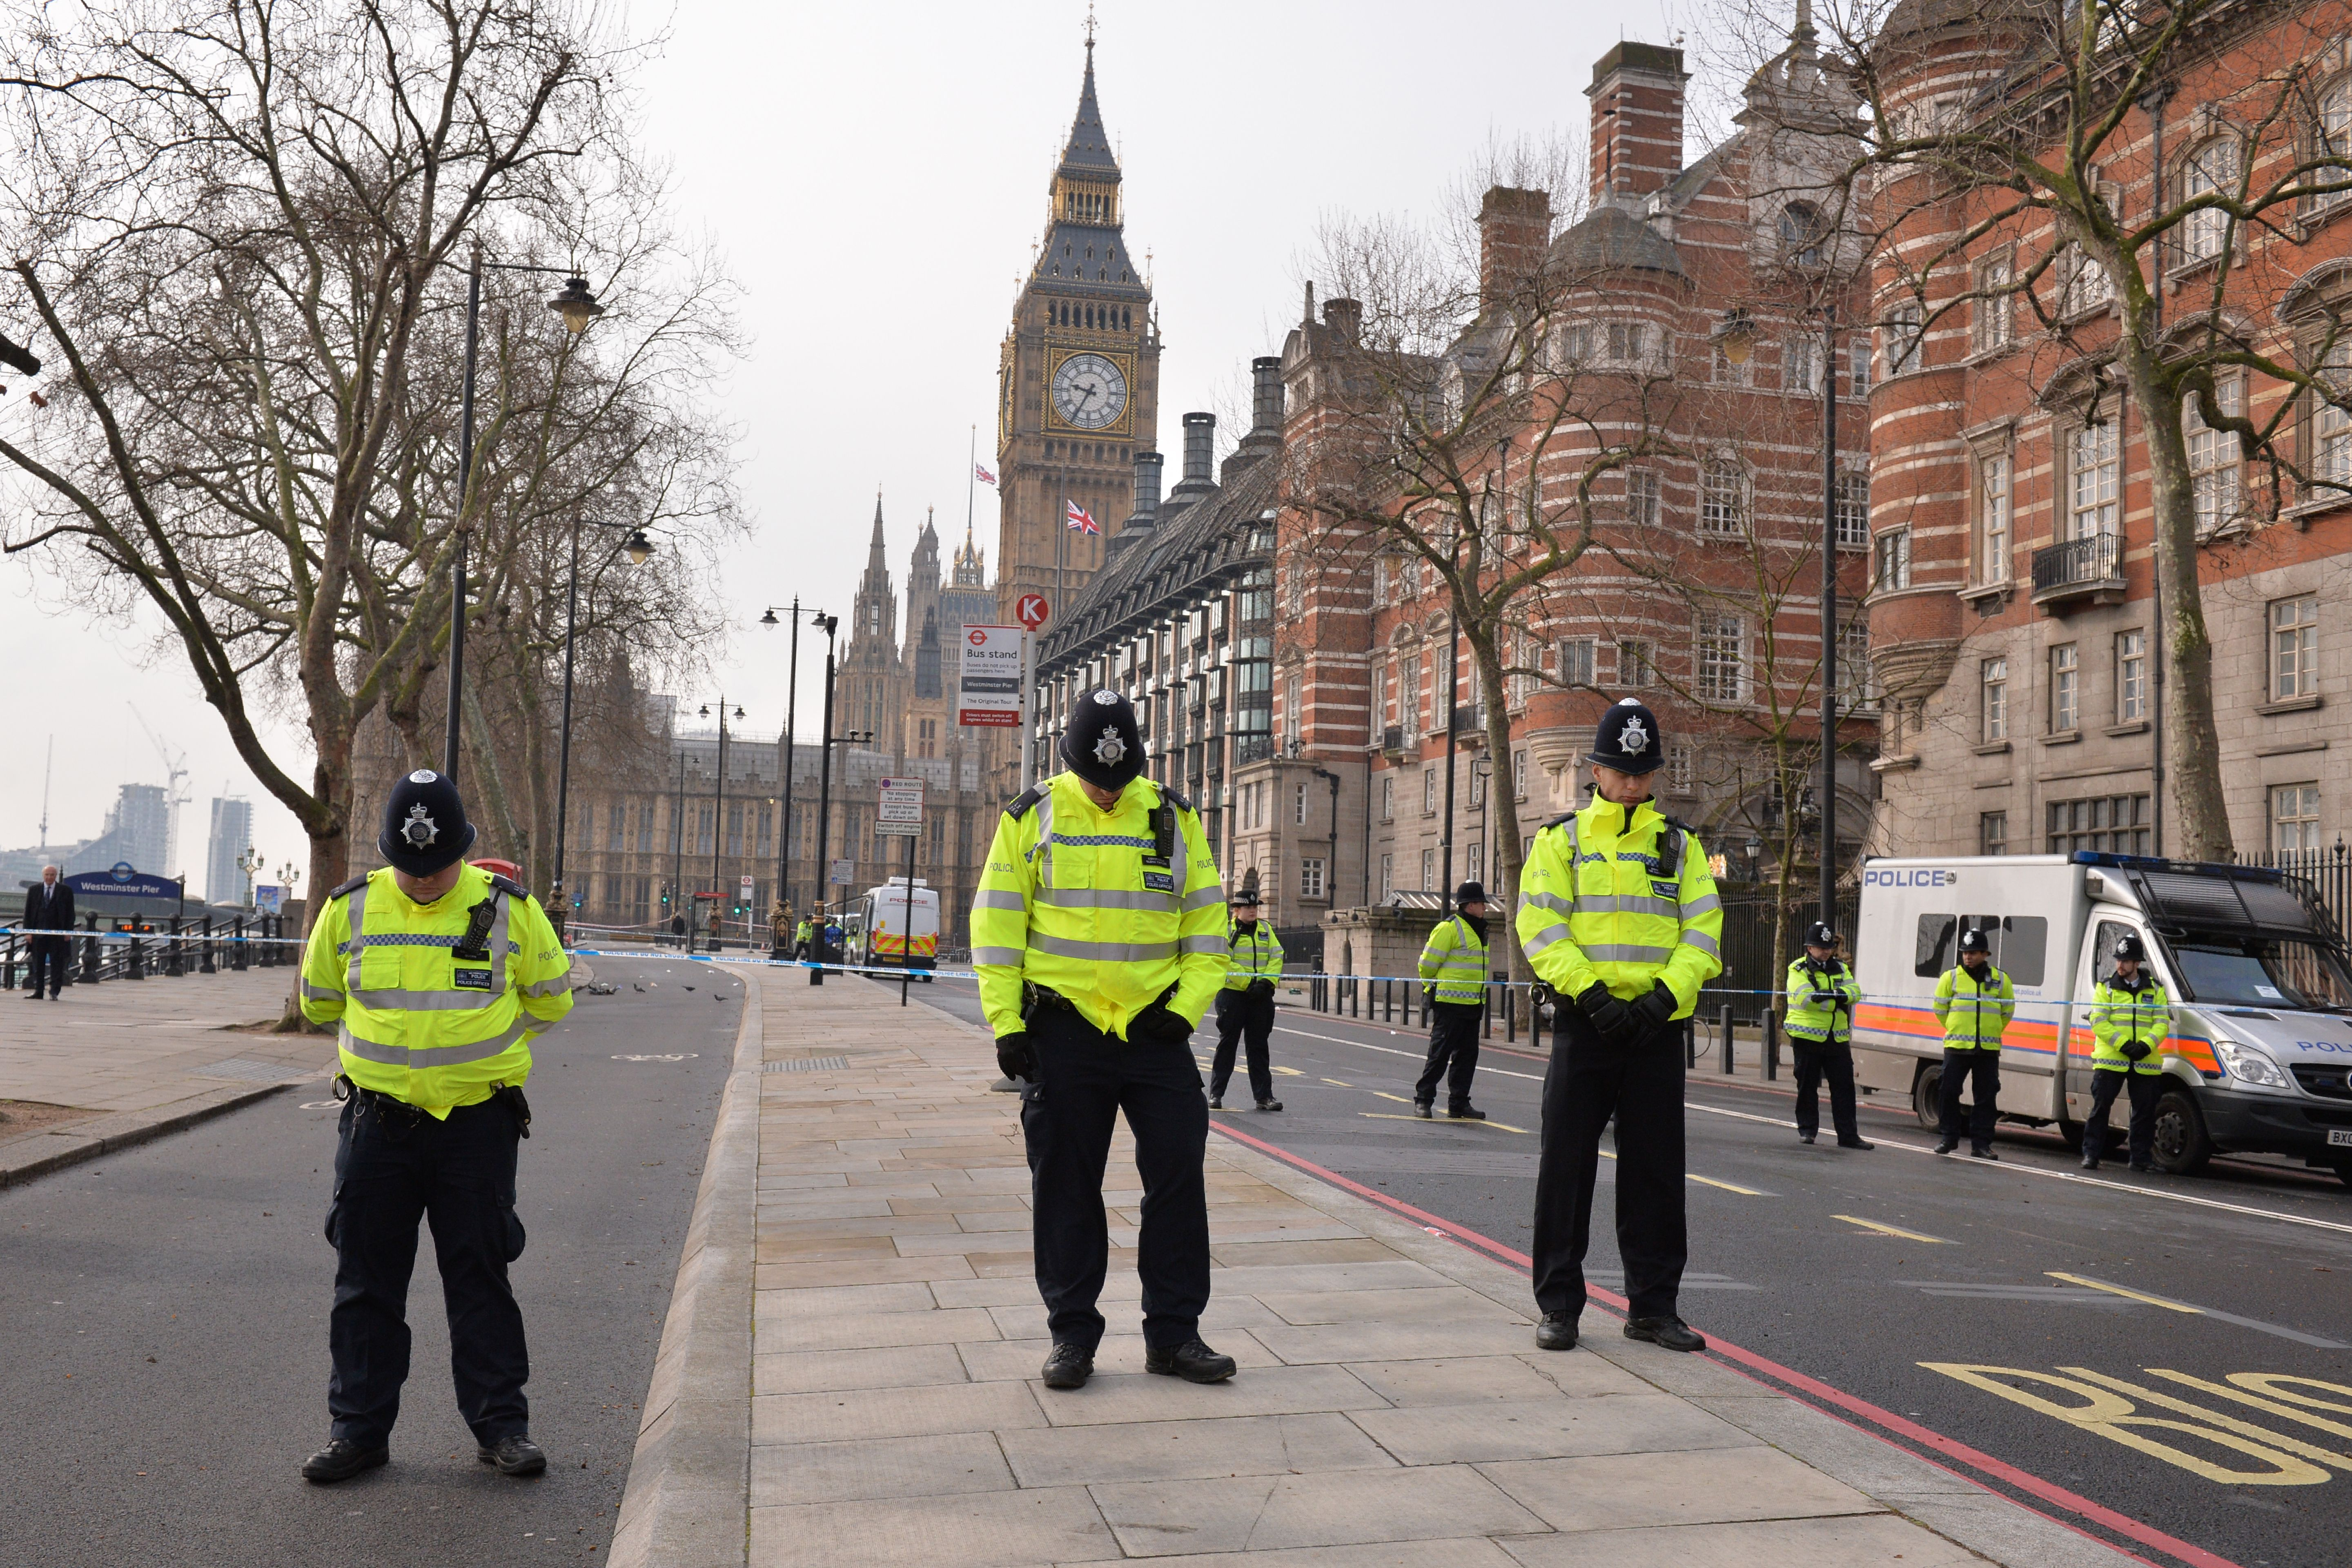 British police officers bow their heads as they stand near a police cordon directly outside New Scotland Yard and within sight of the Houses of Parliament in central London on March 23, 2017.